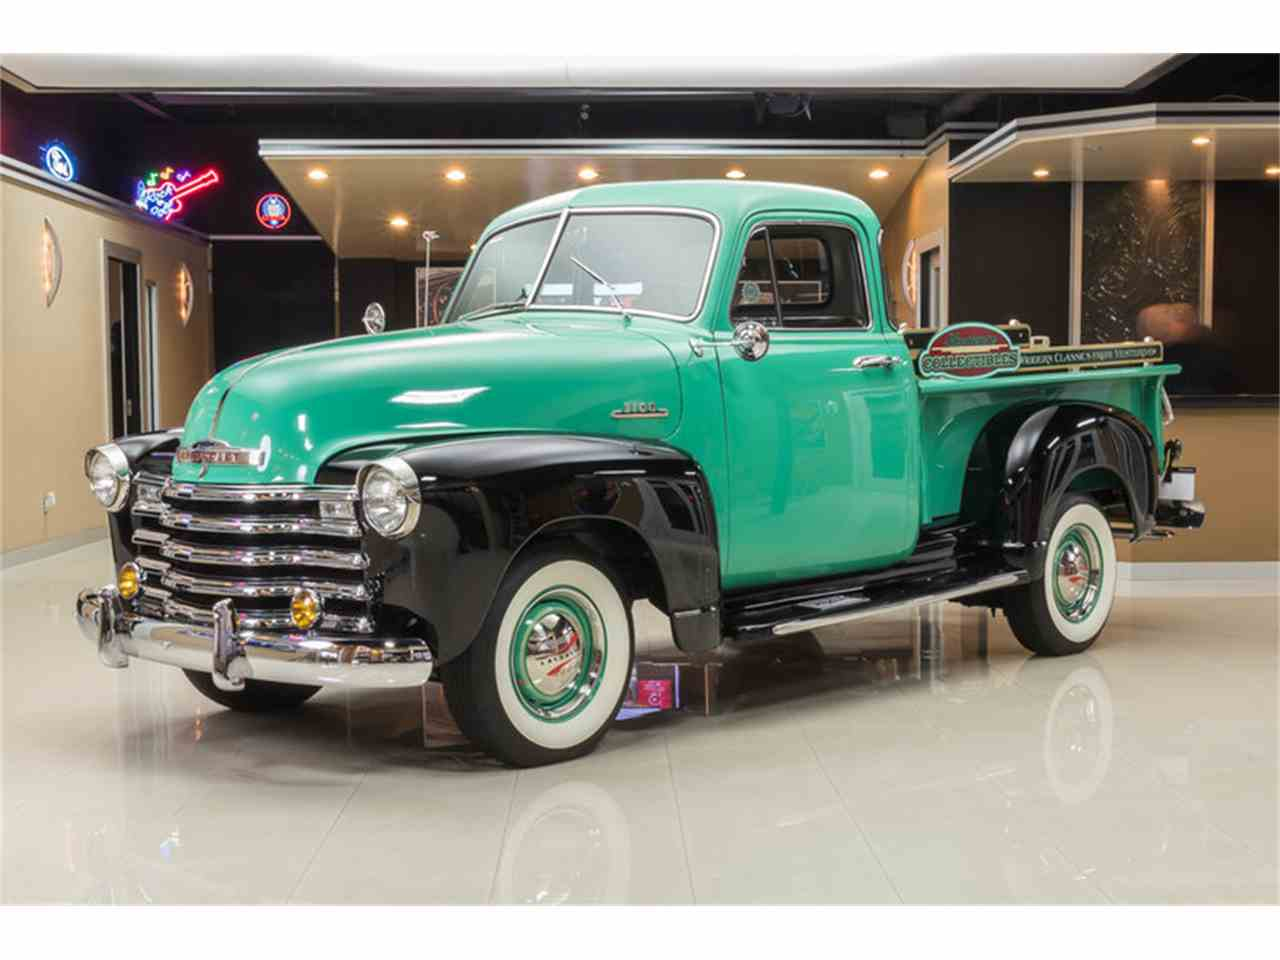 1953 chevrolet 3100 5 window pickup for sale classiccars for 1953 chevy 5 window pickup